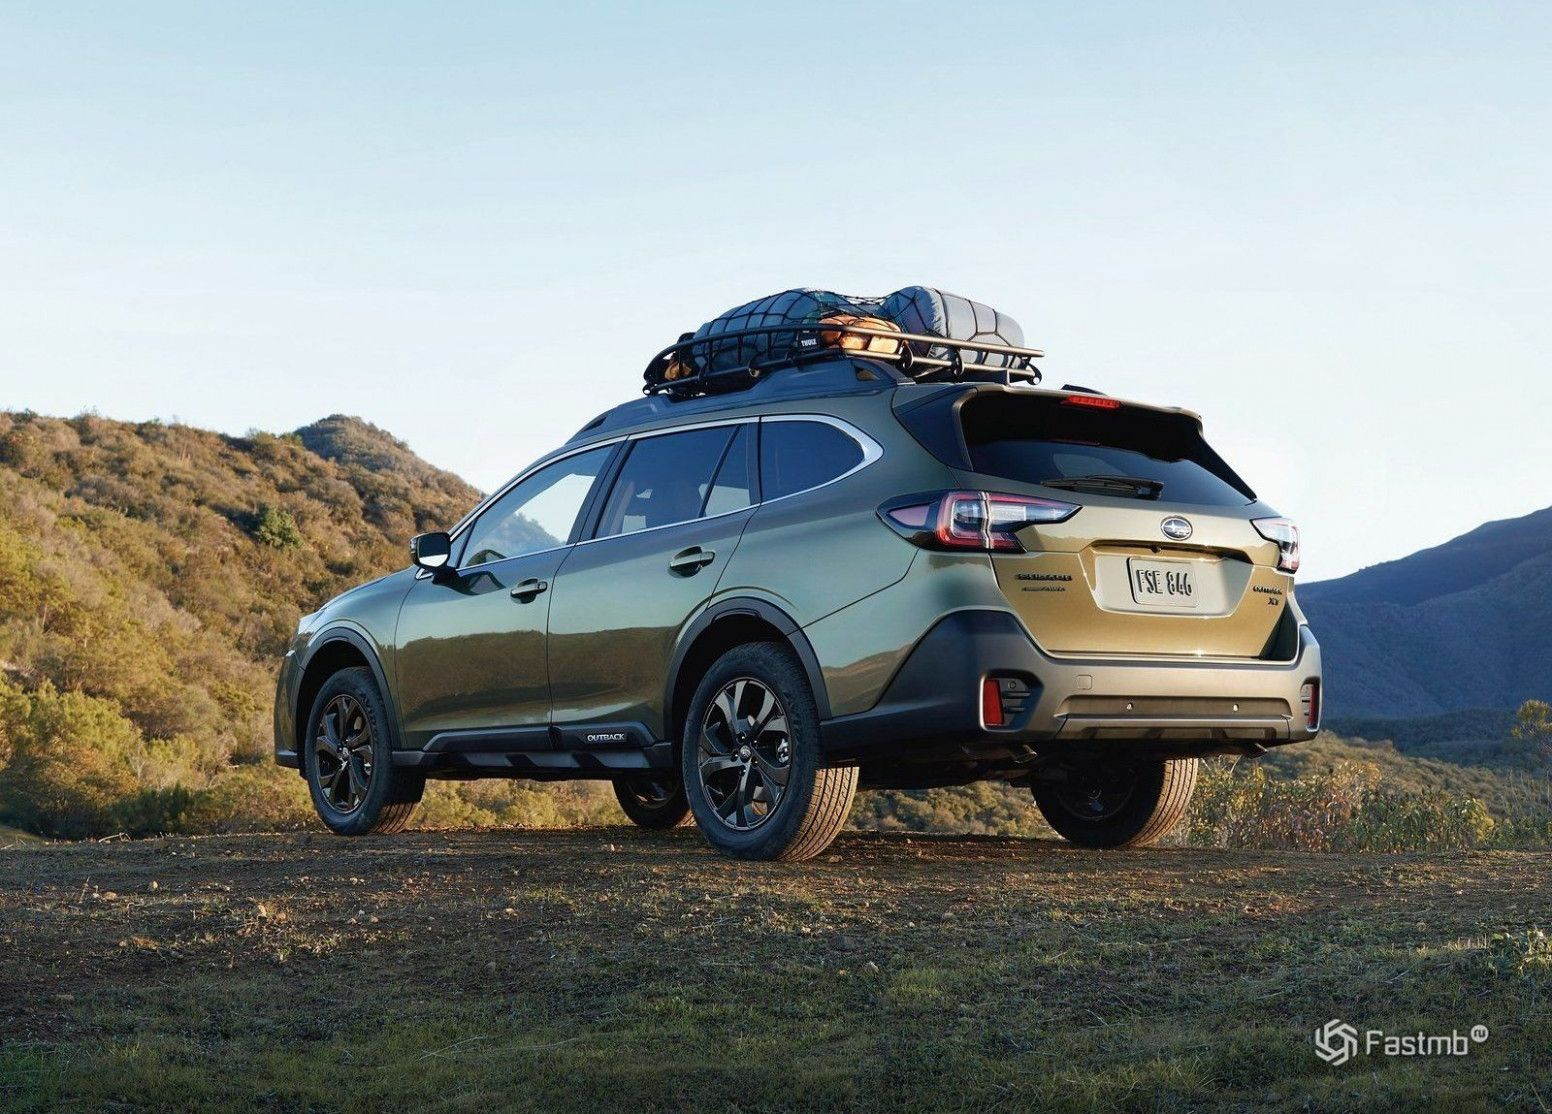 2020 Subaru Outback Youtube Redesign Rim Width 7 5 Prices 2020 Subaru Outback Youtube Includes Auto Dimming Exterior Mirror Check More At Http Mudas Me Di 2020